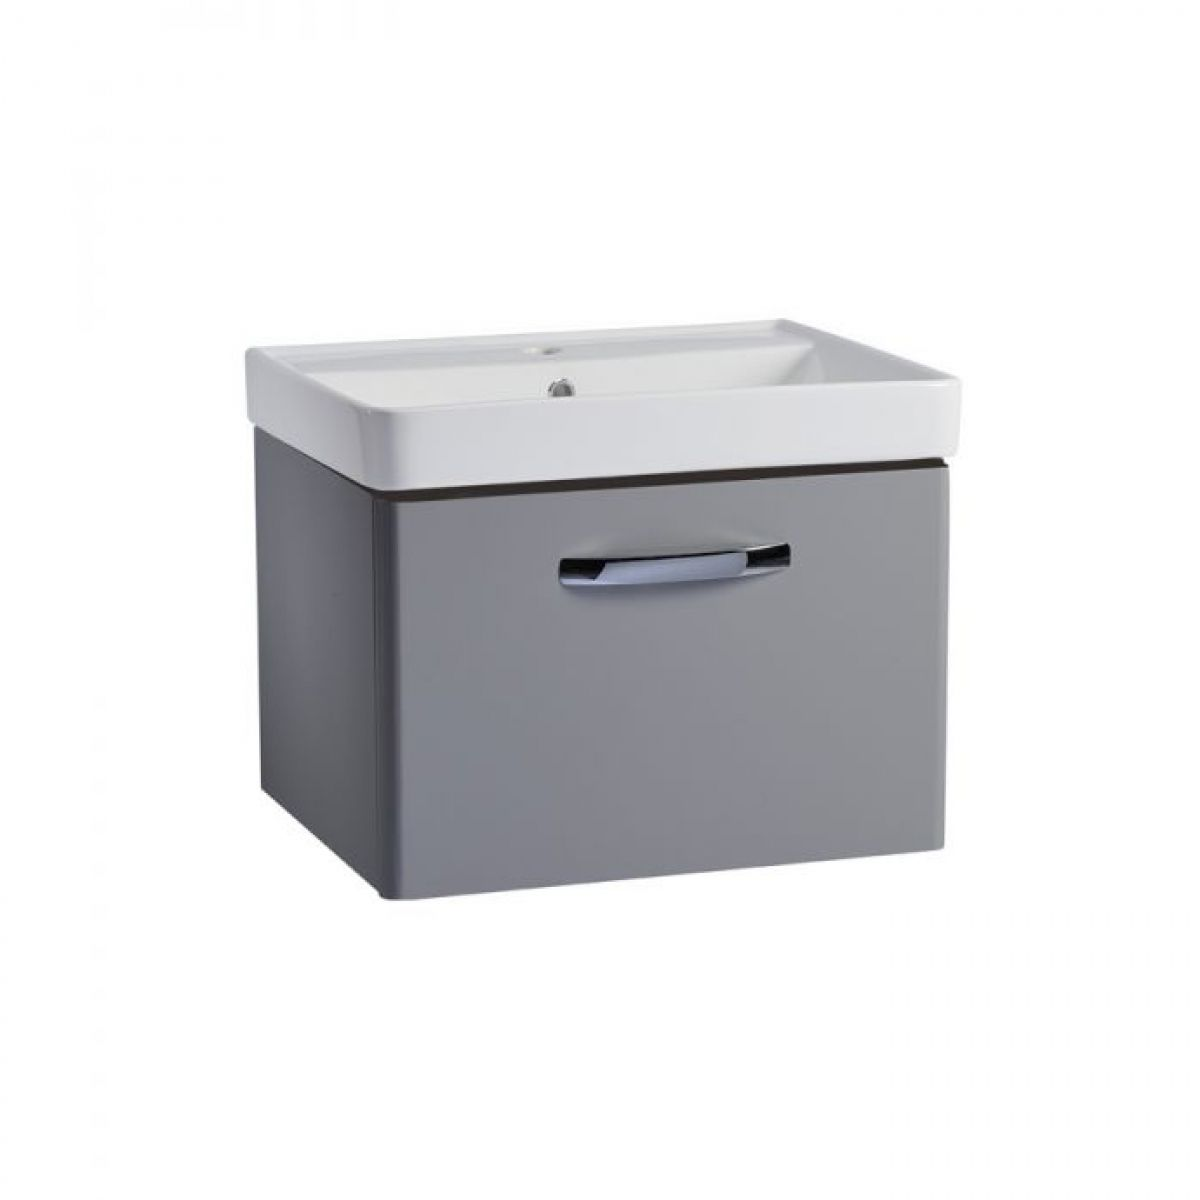 Tavistock Compass Grey Wall Mounted Vanity Unit 600mm